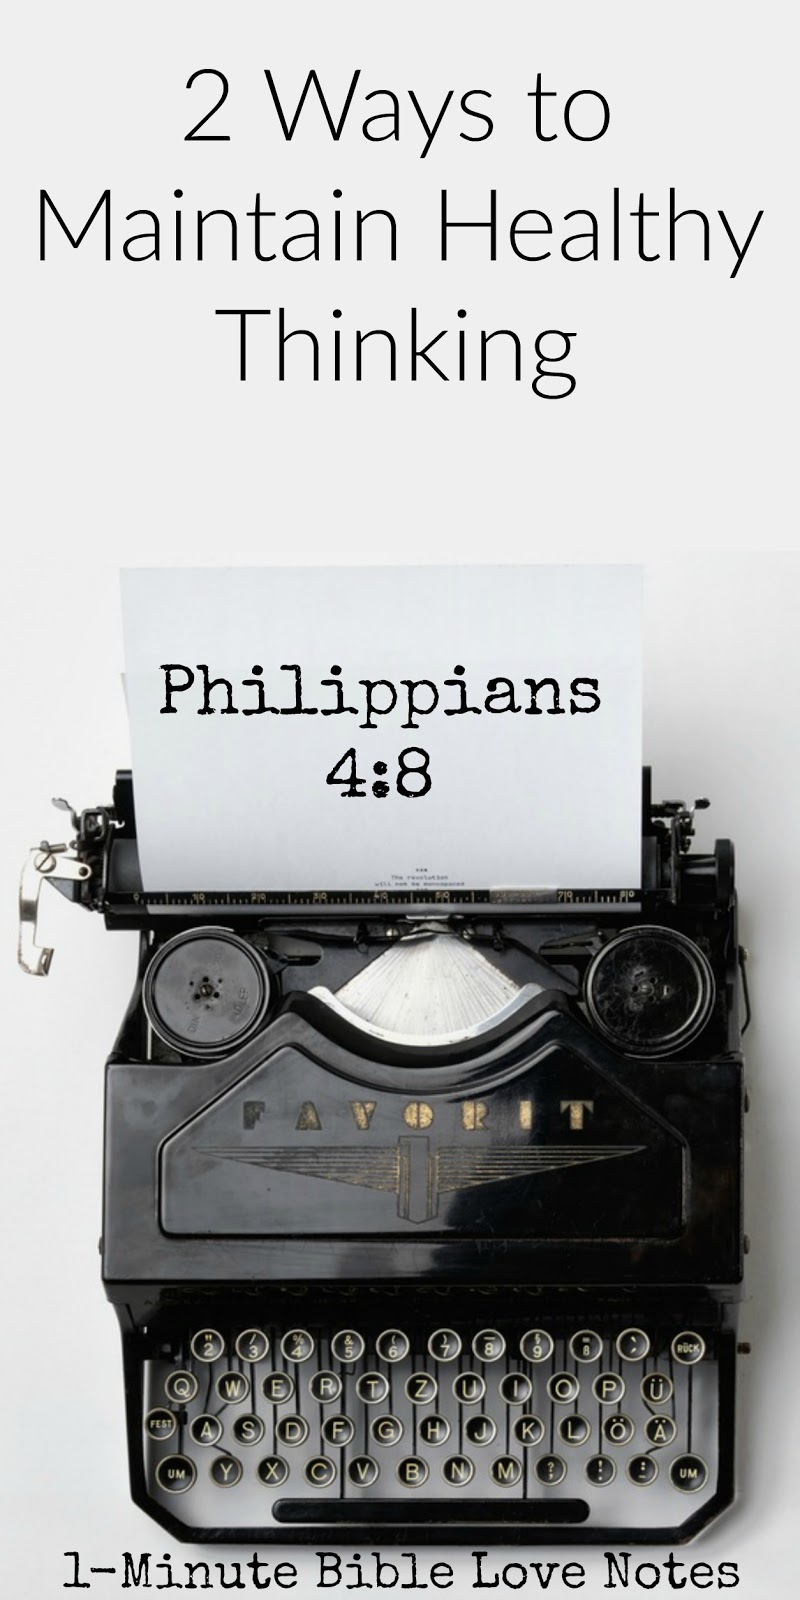 Bite Size Bible Study: 2 Ways to Maintain Healthy Thinking